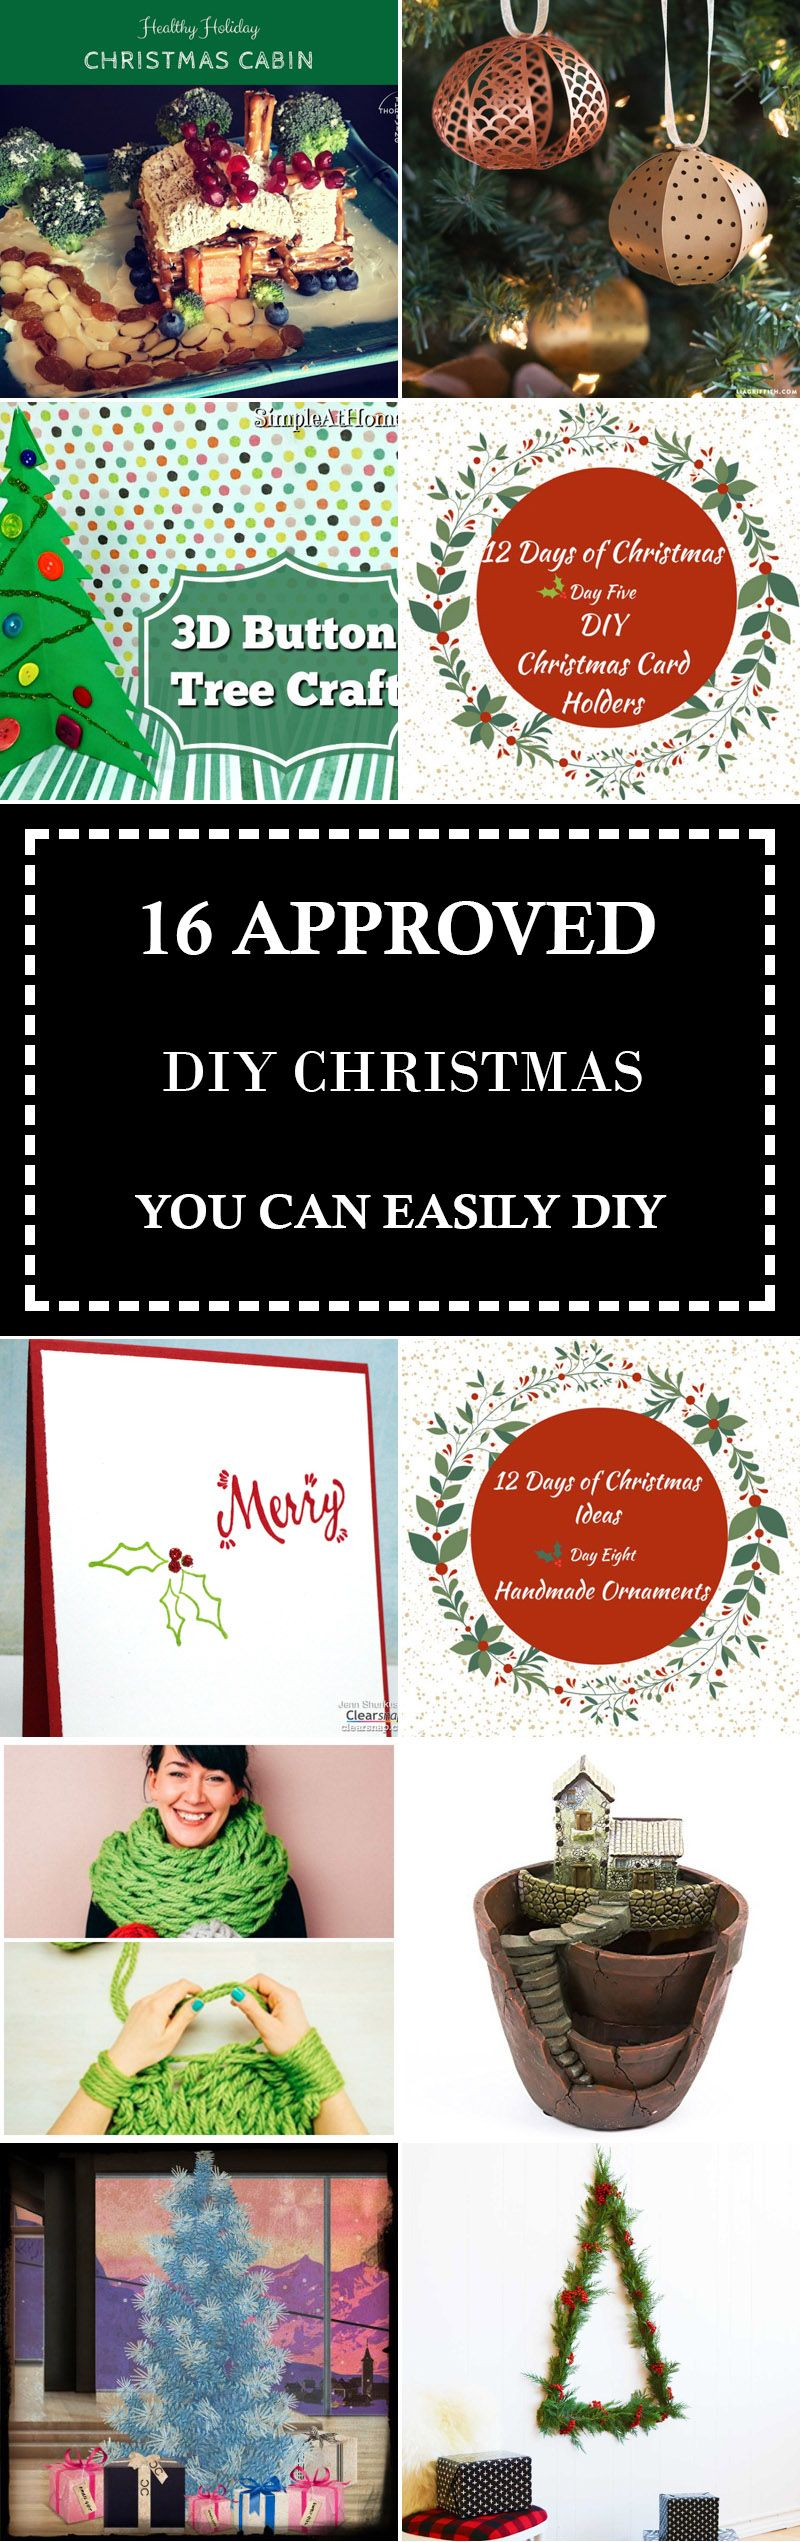 16 Approved Diy Christmas You Can Easily Diy